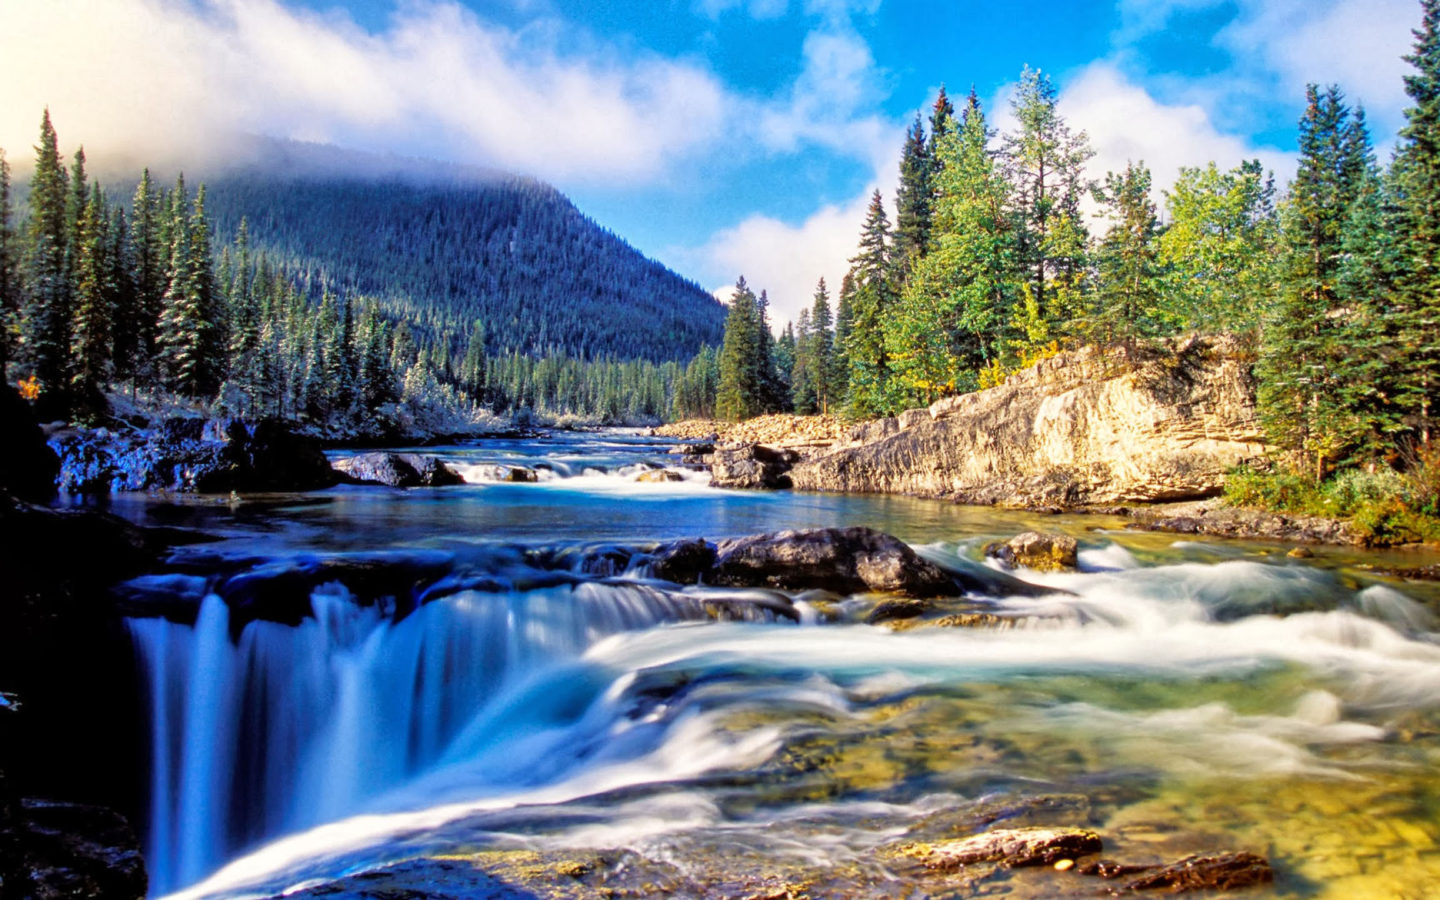 Fall Wallpaper For Desktop Background Nature Mountain Dense Spruce Forest River Rock Waterfall